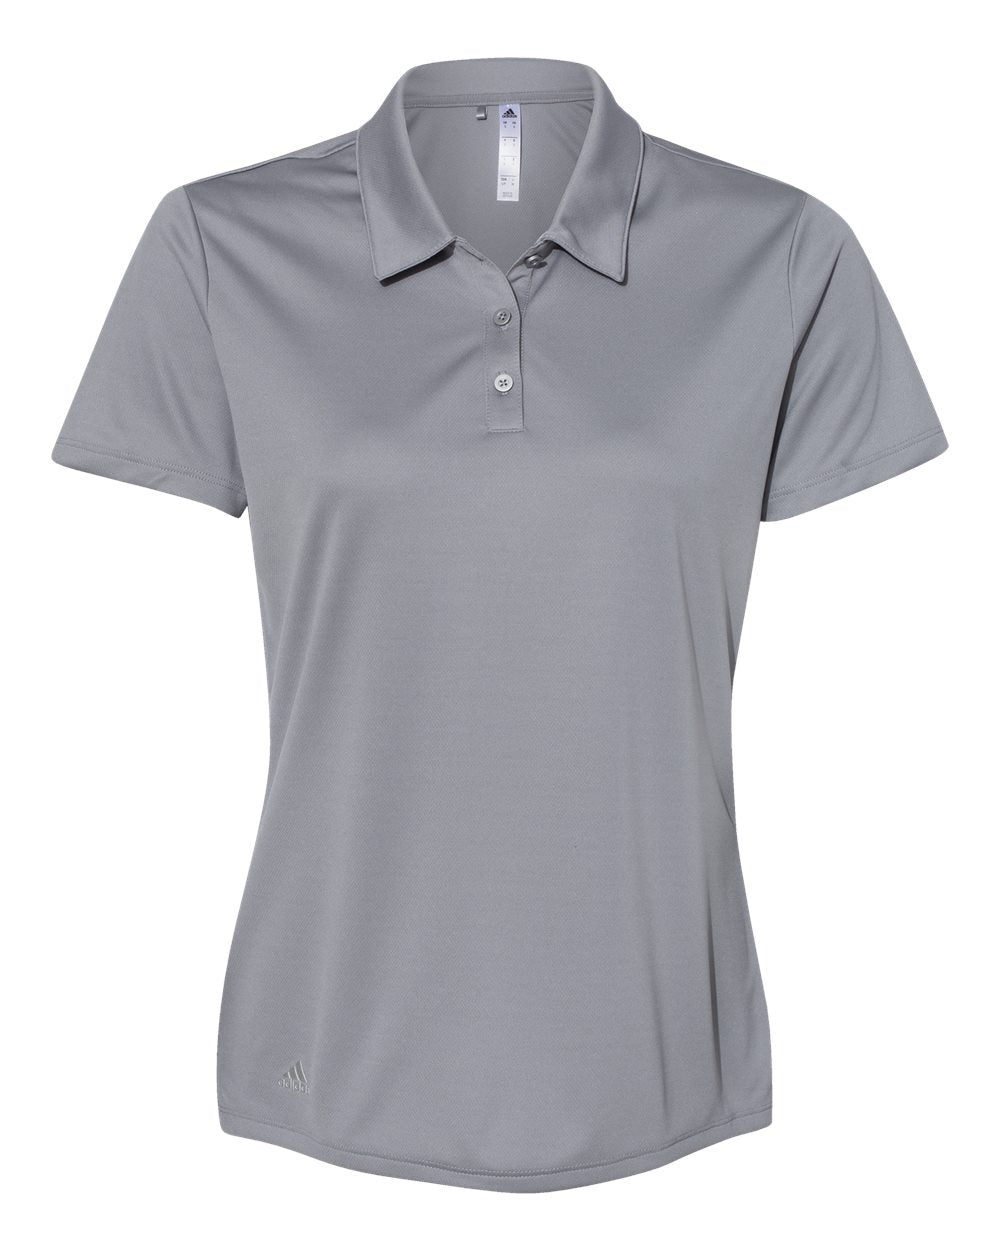 ADIDAS LADIES PERFORMANCE POLO